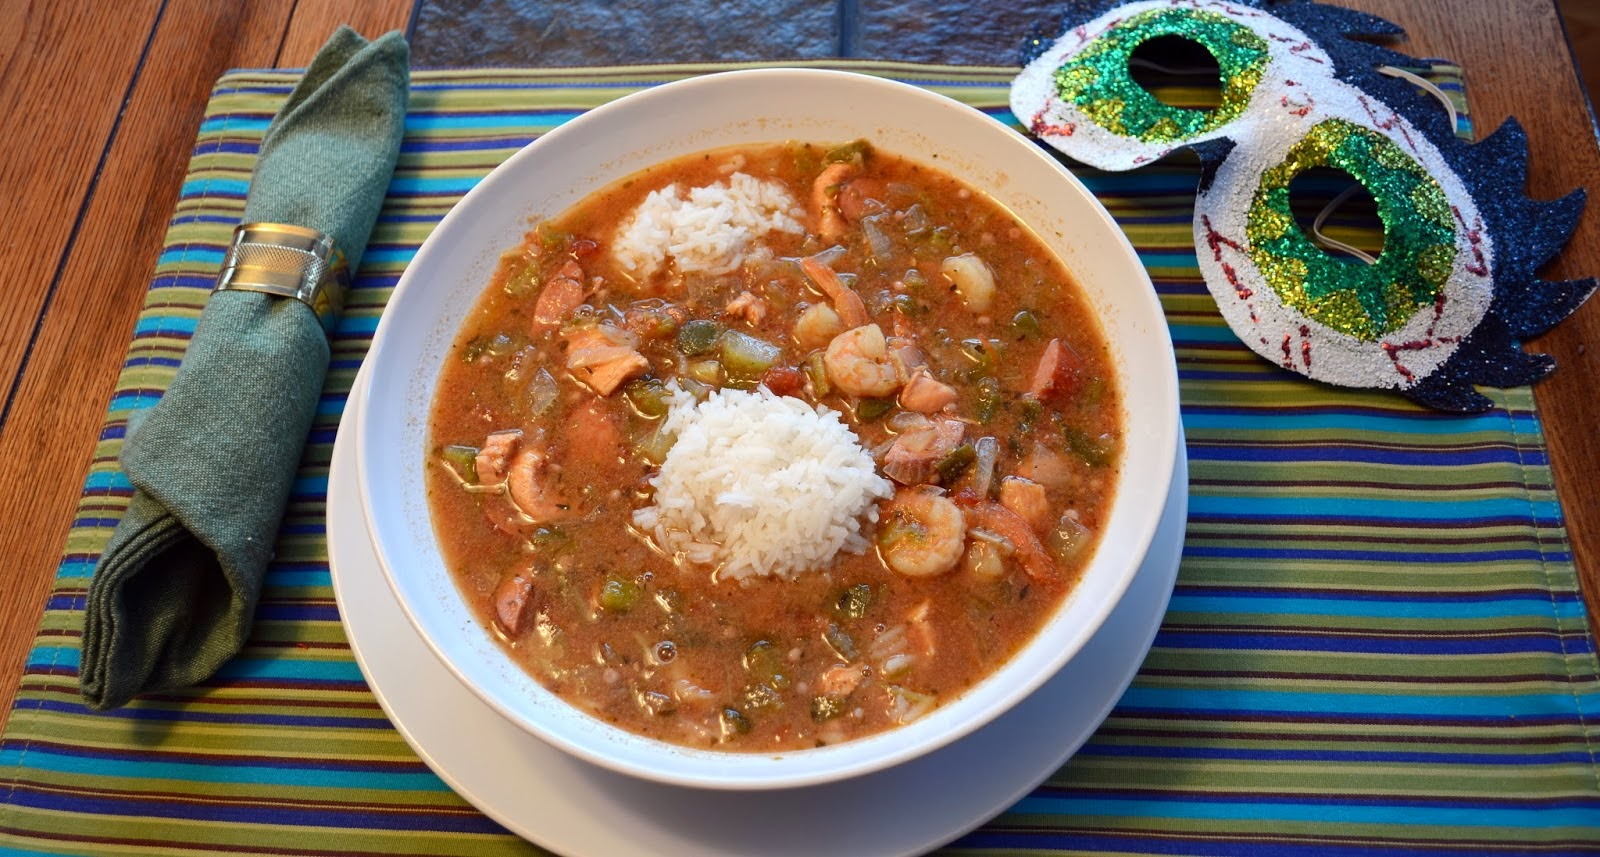 gluten-free, gumbo, slow cooker, crockpot, dinner